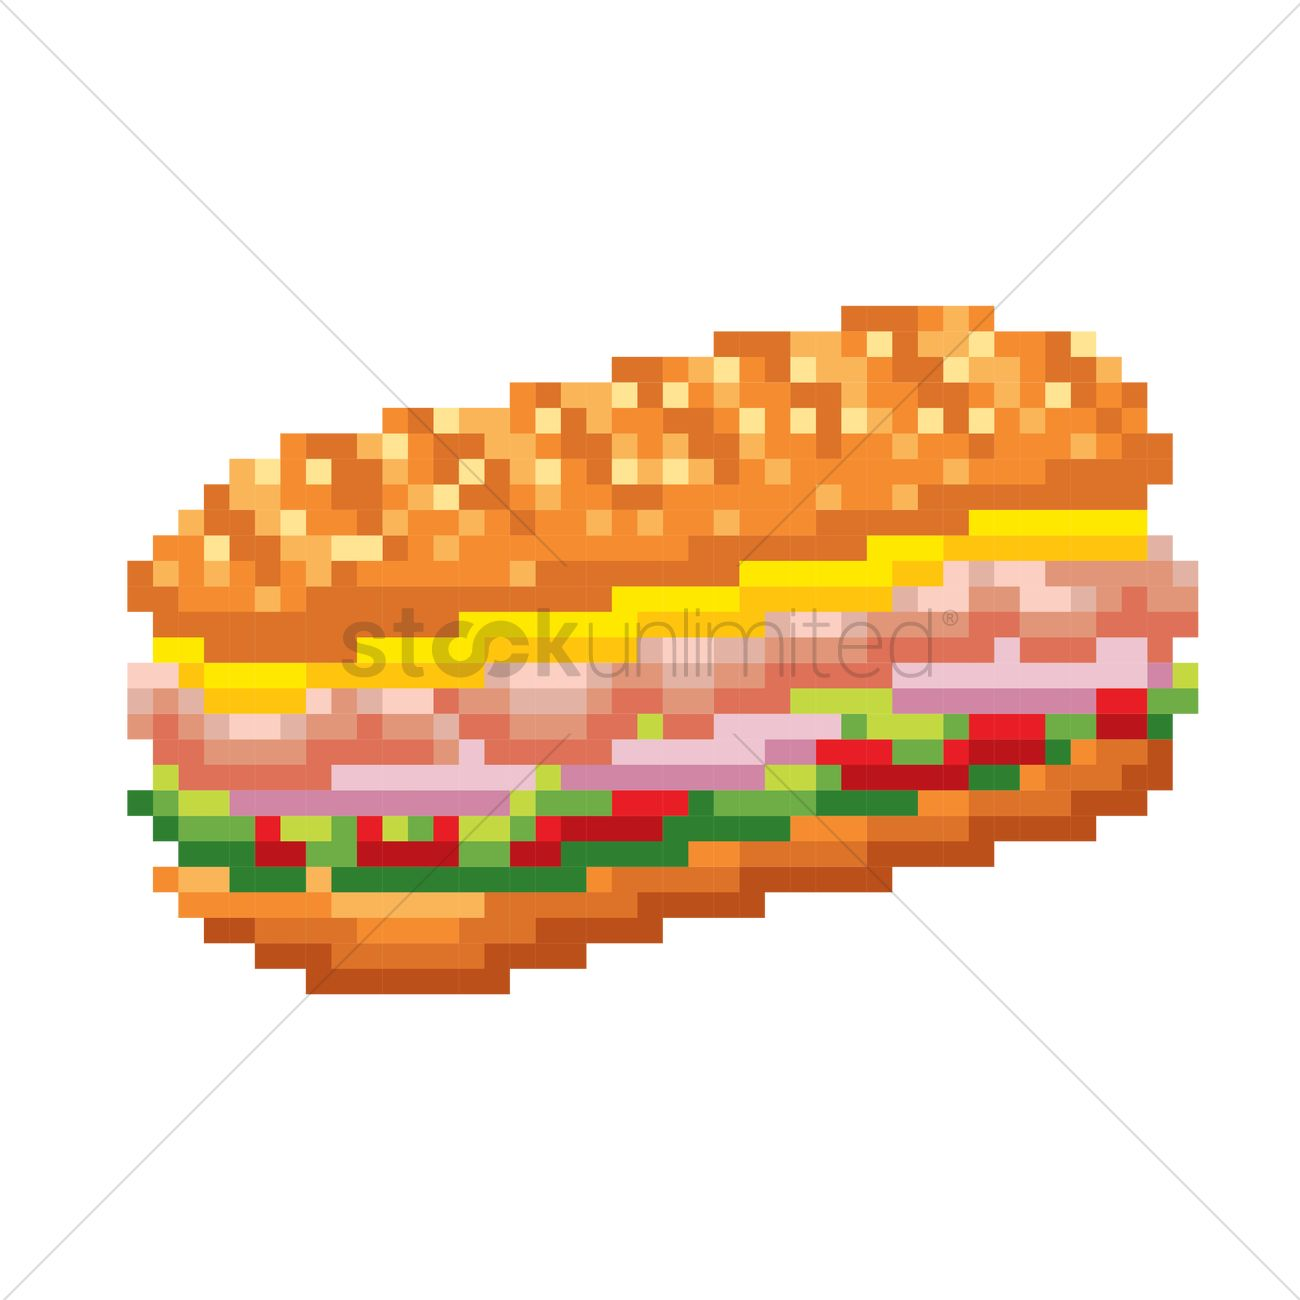 Pixel Art Sandwich Vector Image 1987369 Stockunlimited